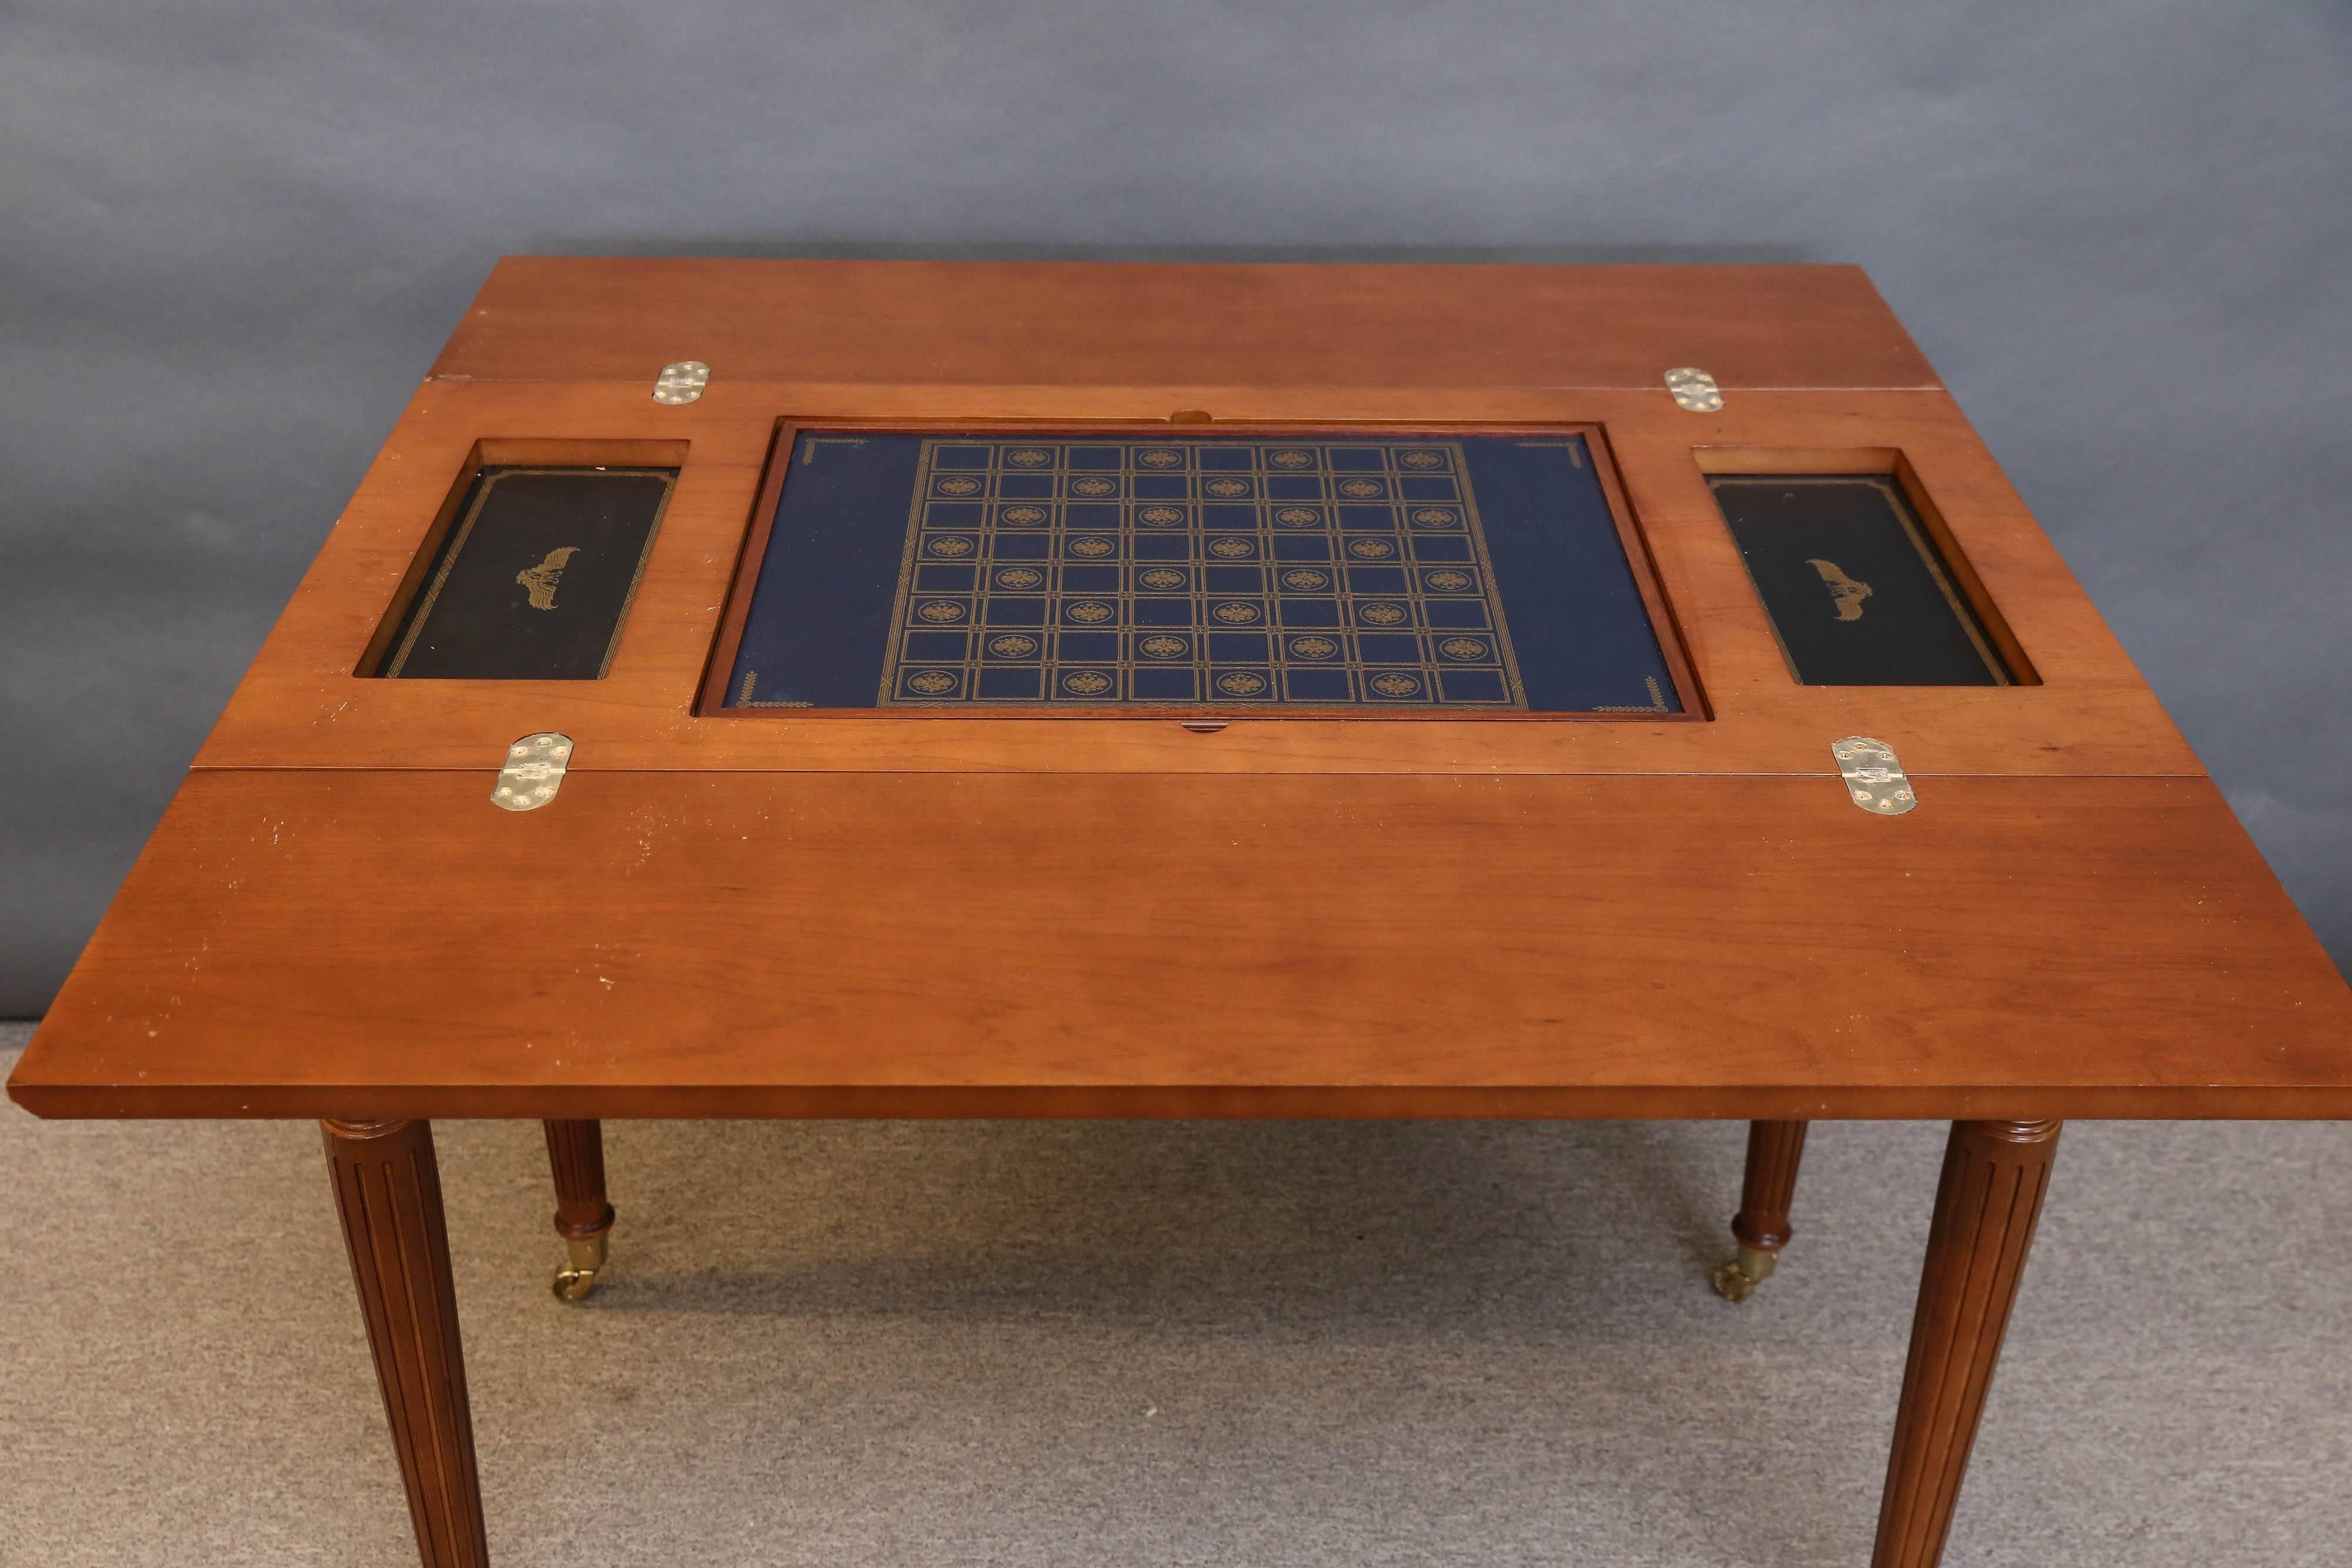 House Of Faberge Imperial 5 In 1 Game Table Done By Franklin Mint In  Excellent Condition